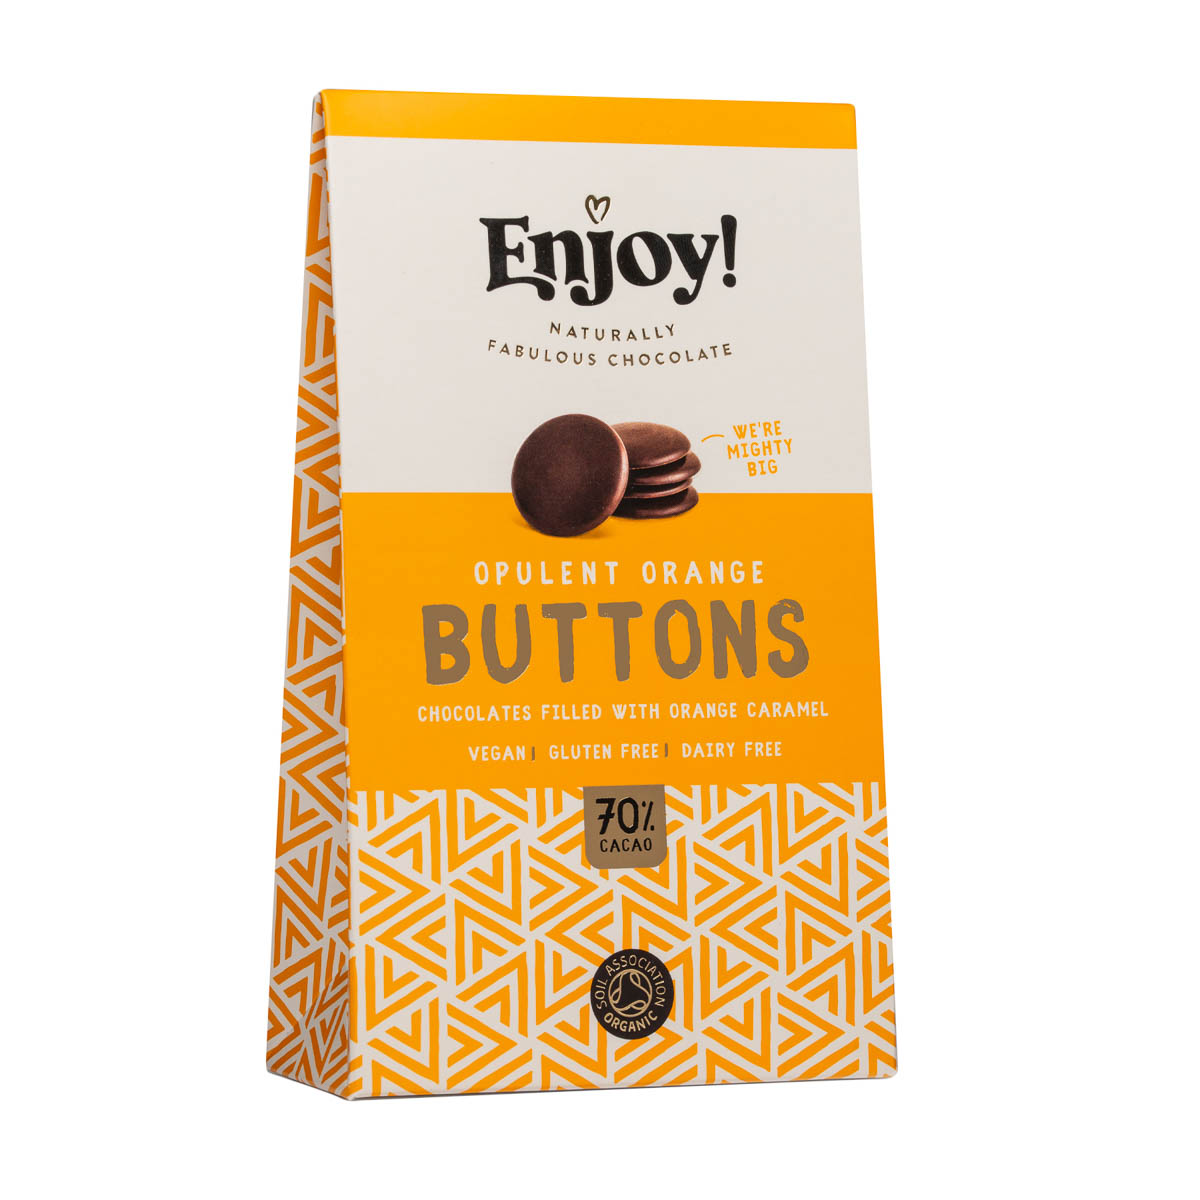 Enjoy Raw Chocolate - Opulent Orange Buttons (96g)